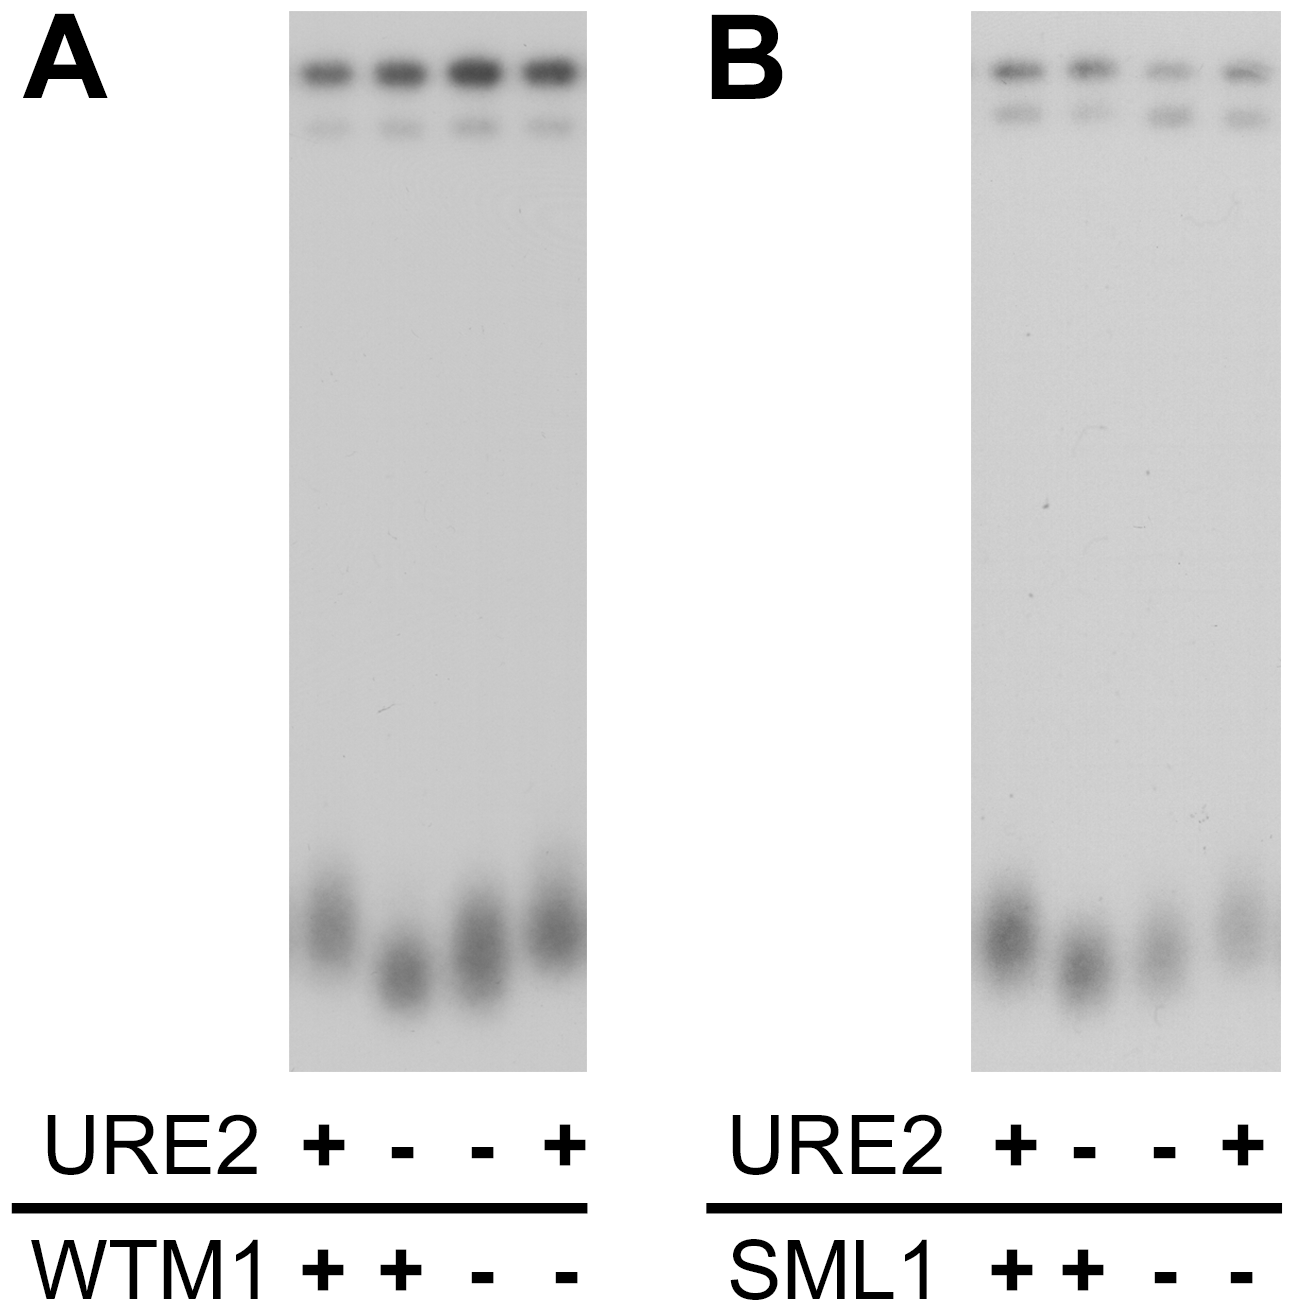 Removal of ribonucleotide reductase inhibition alleviates the short telomere phenotype in strains lacking URE2.